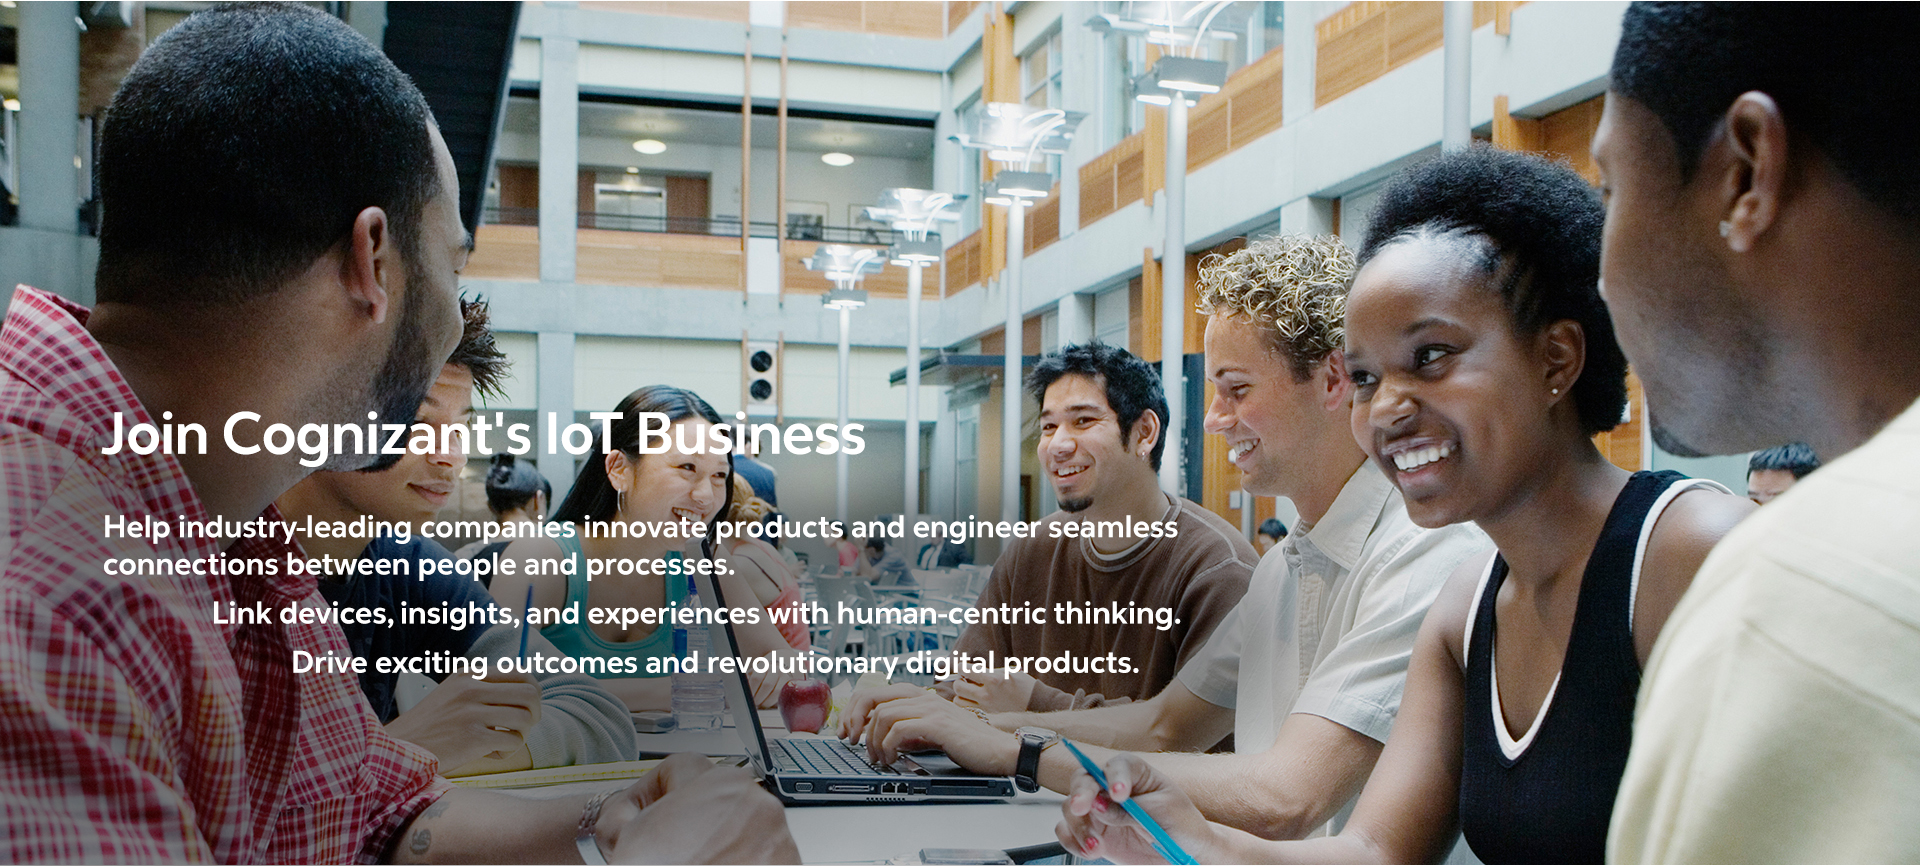 The Internet of things team collaborates to find best solutions